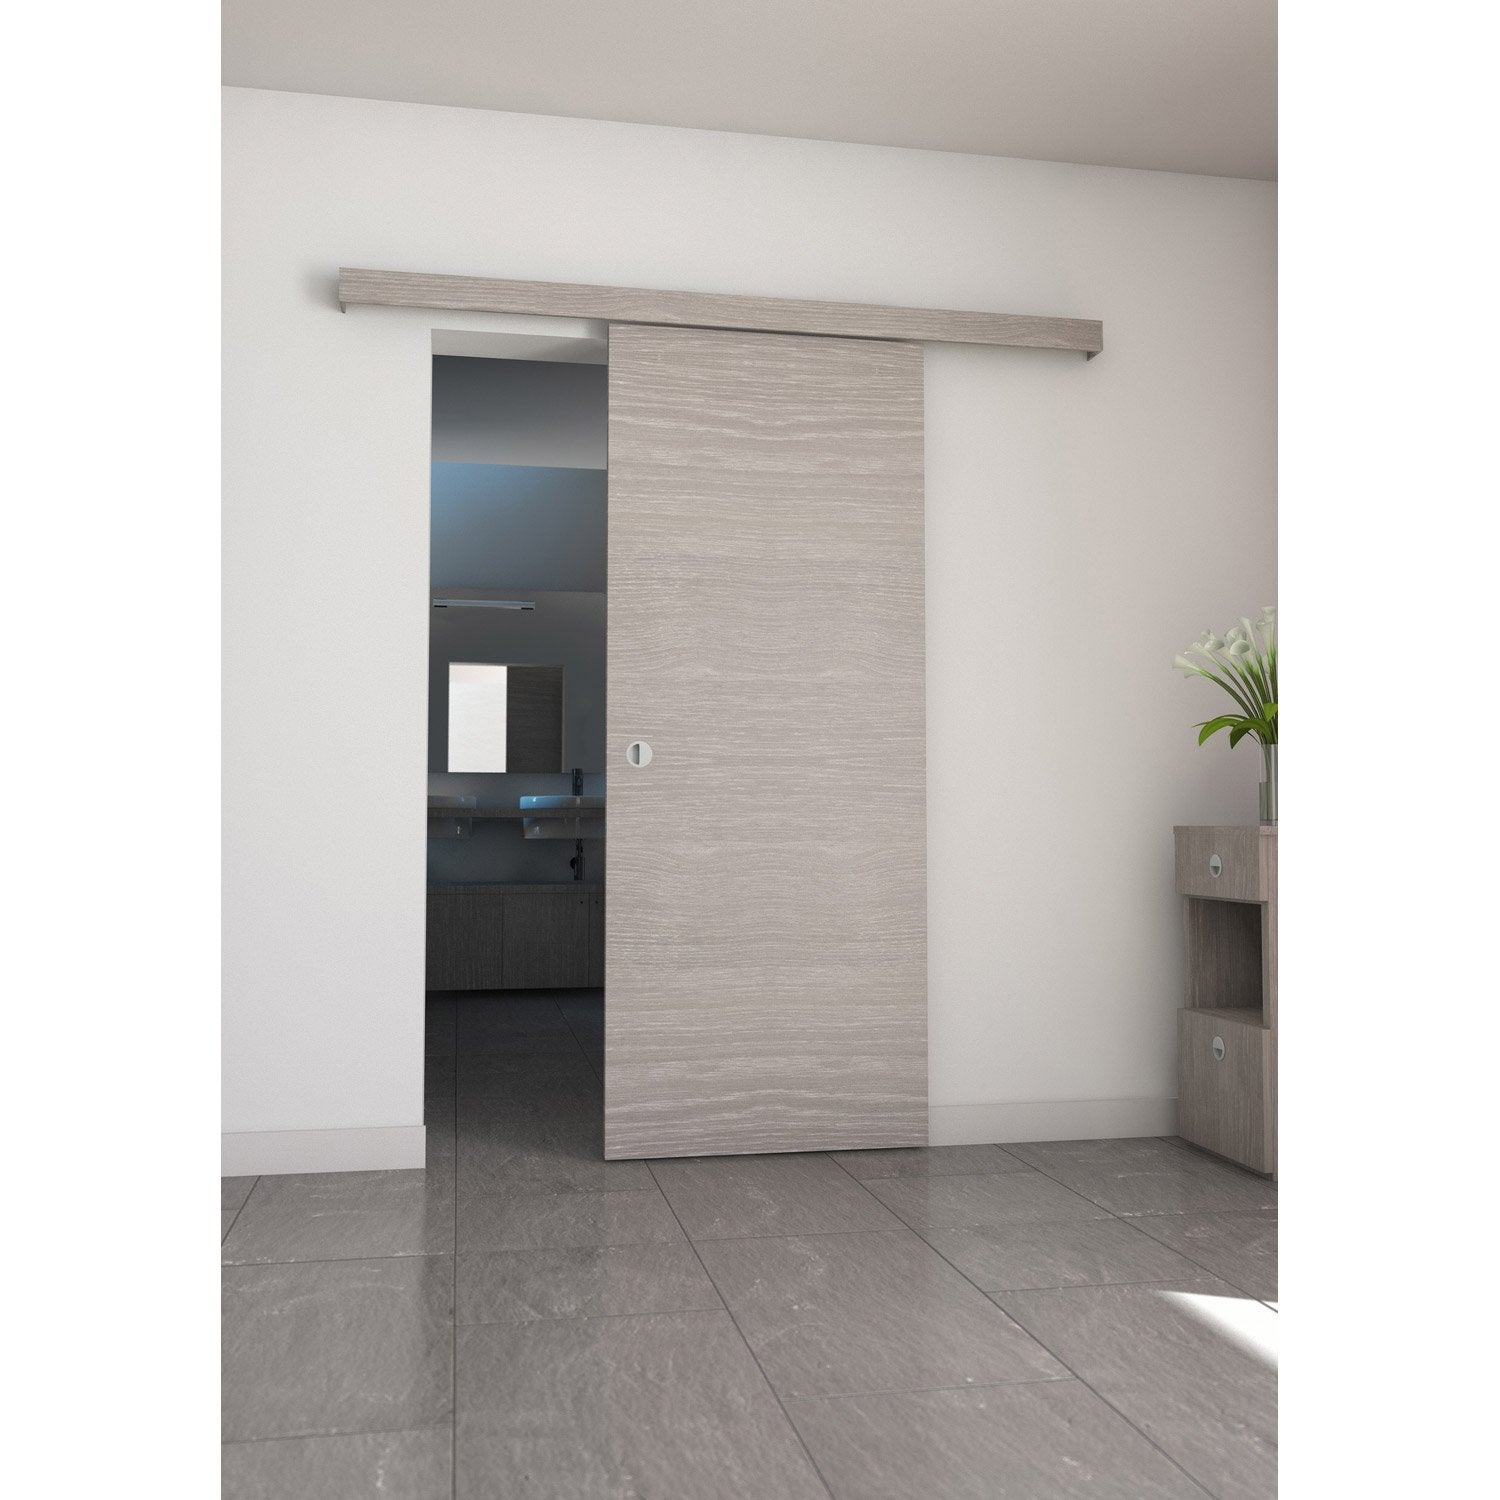 Ensemble porte coulissante coulicool mdf rev tu aluminium for Porte soffietto leroy merlin